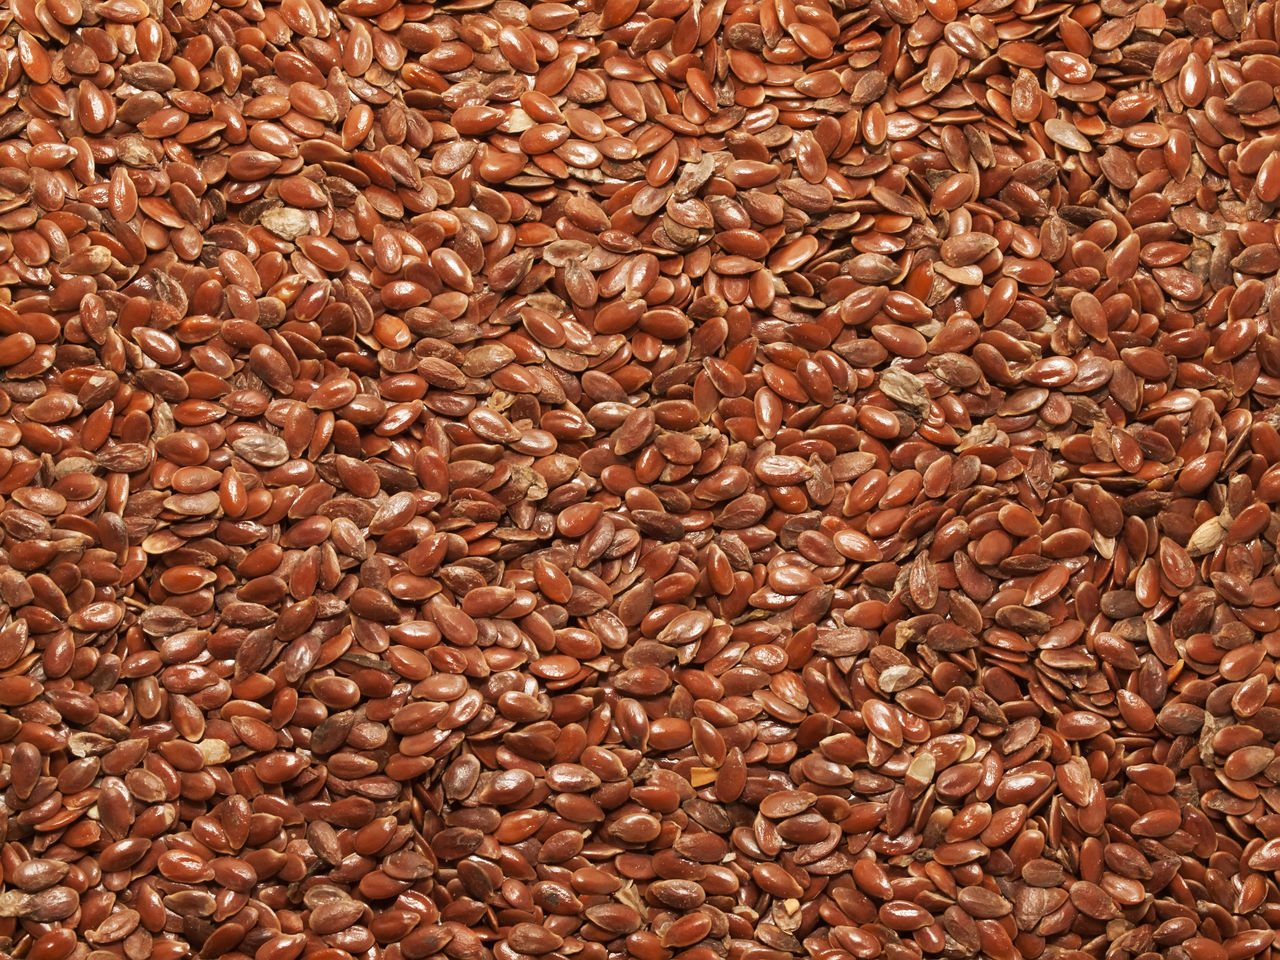 food and drink, full frame, backgrounds, food, freshness, abundance, brown, no people, indoors, close-up, large group of objects, healthy eating, coffee bean, day